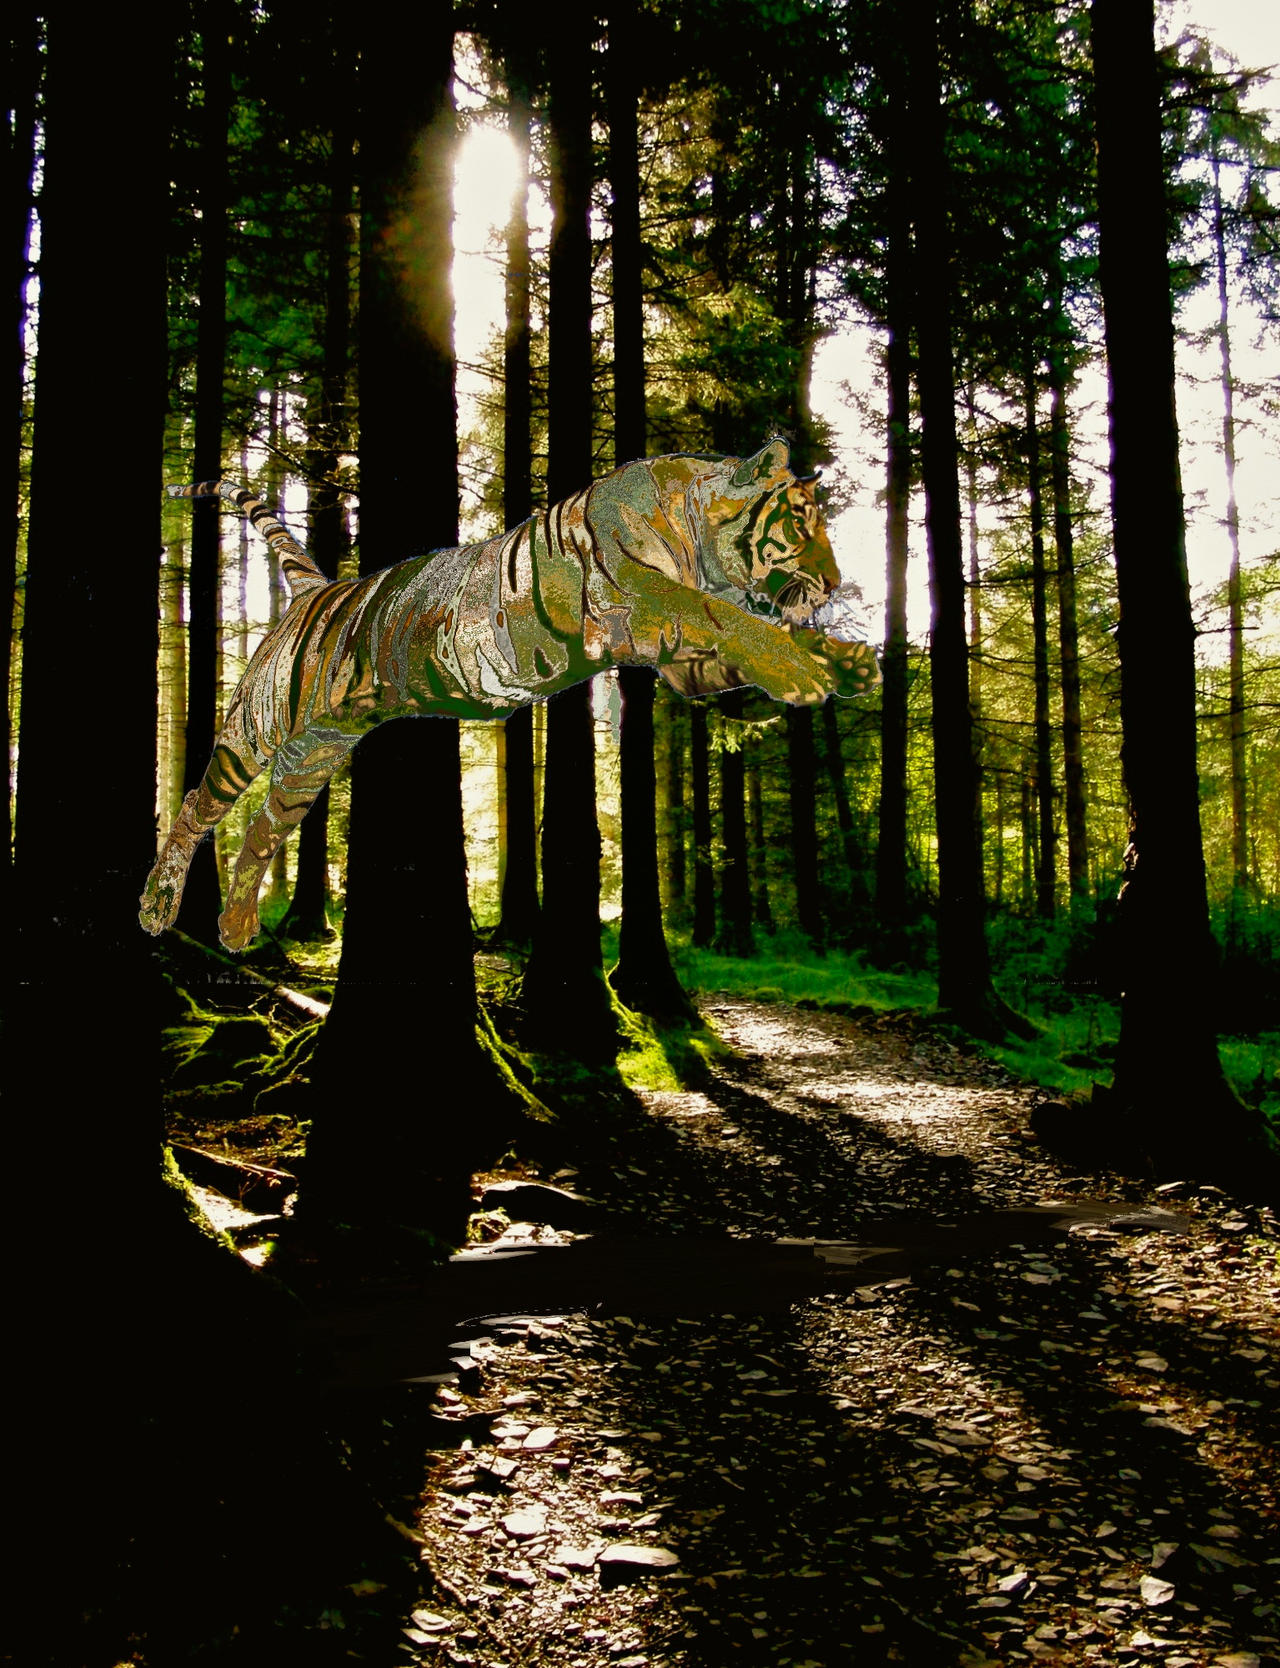 If Tigers lived in Wales by KateHodges